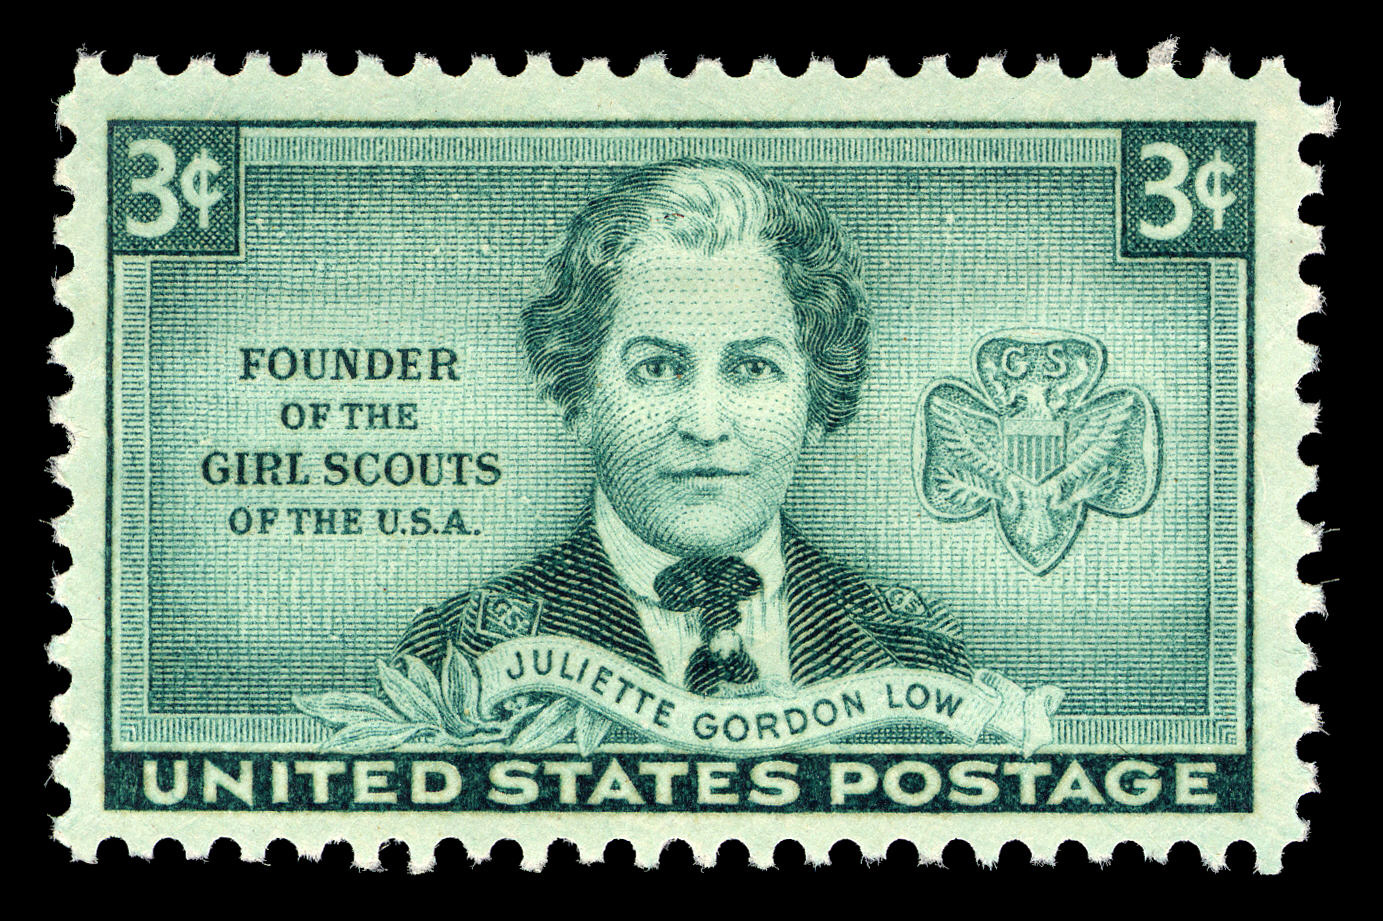 United States postage stamp showing the trefoil badge and Juliette Gordon Low in a Girl Scout uniform.